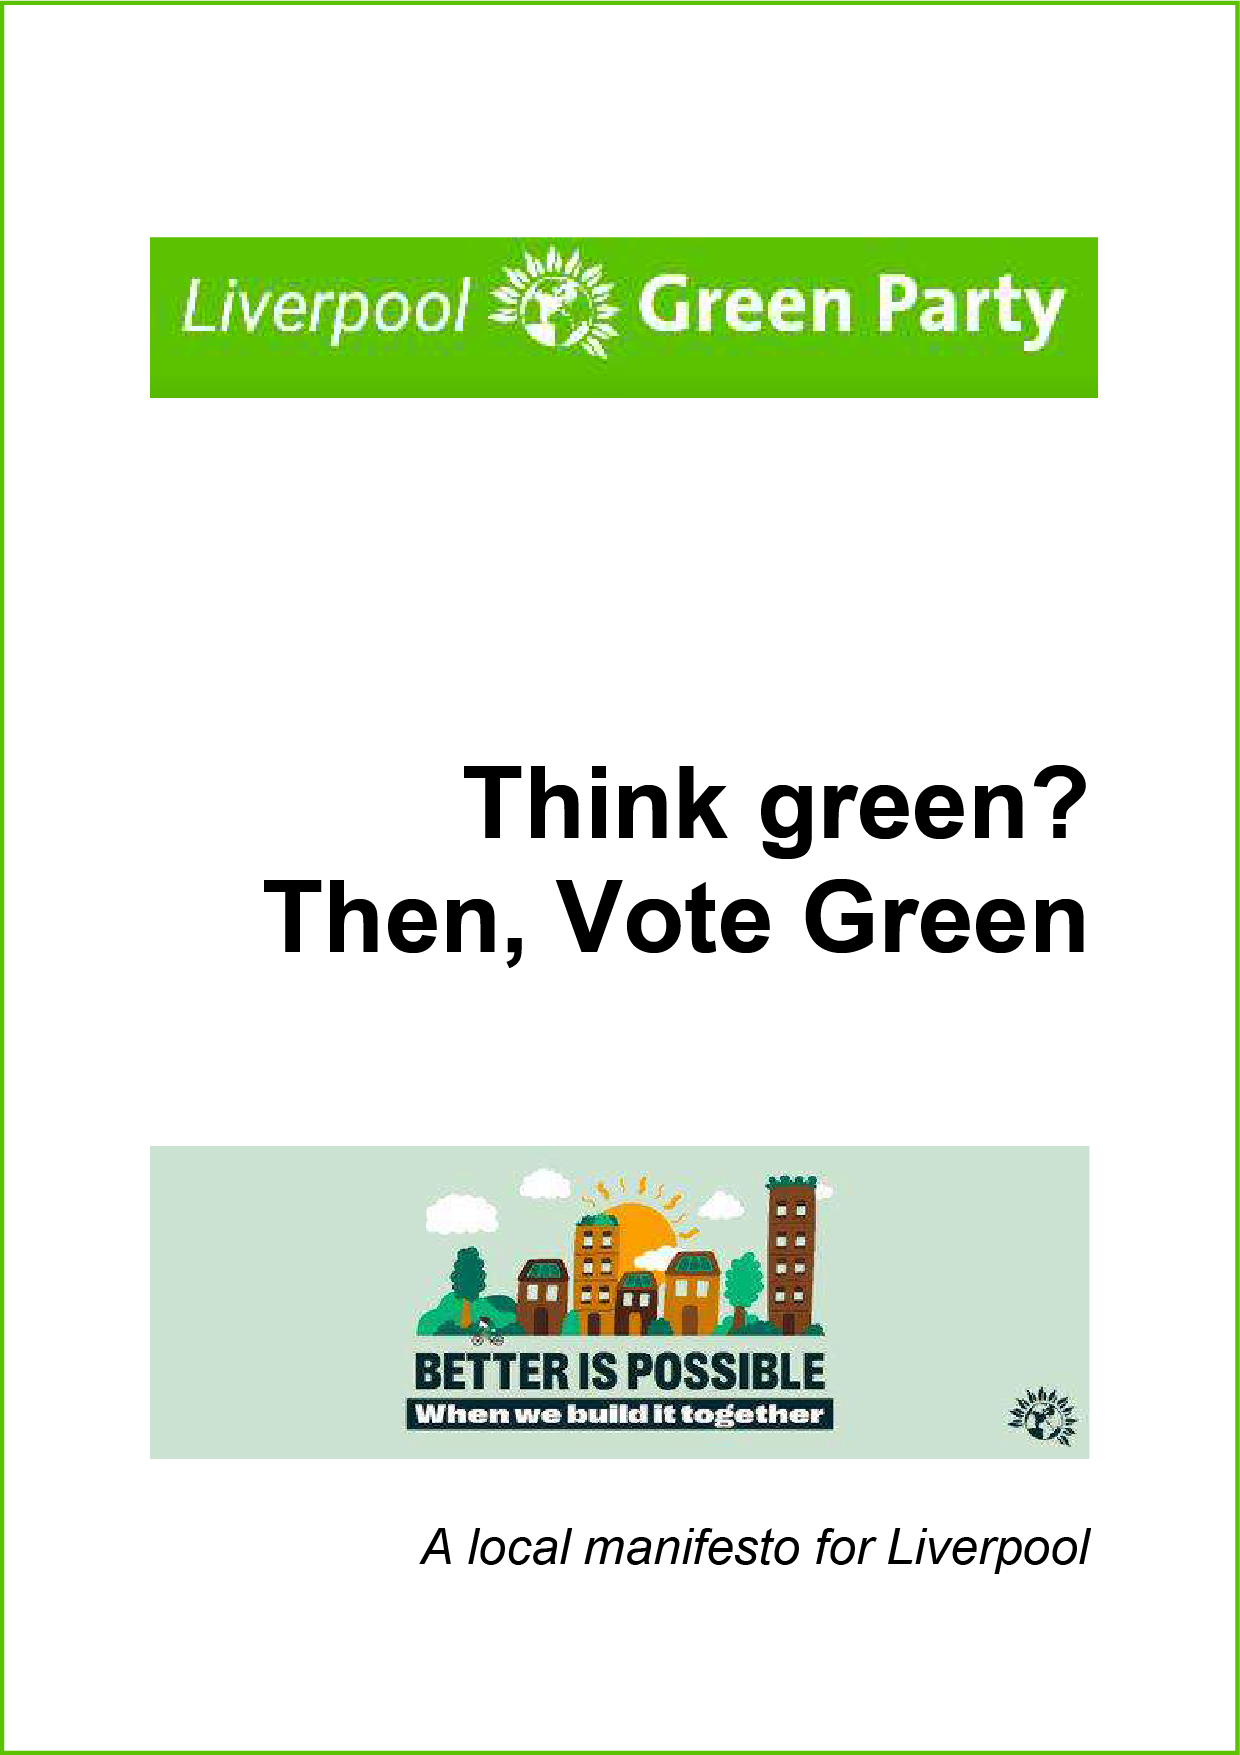 liverpoolgreenpartymanifesto2021_compressed-1